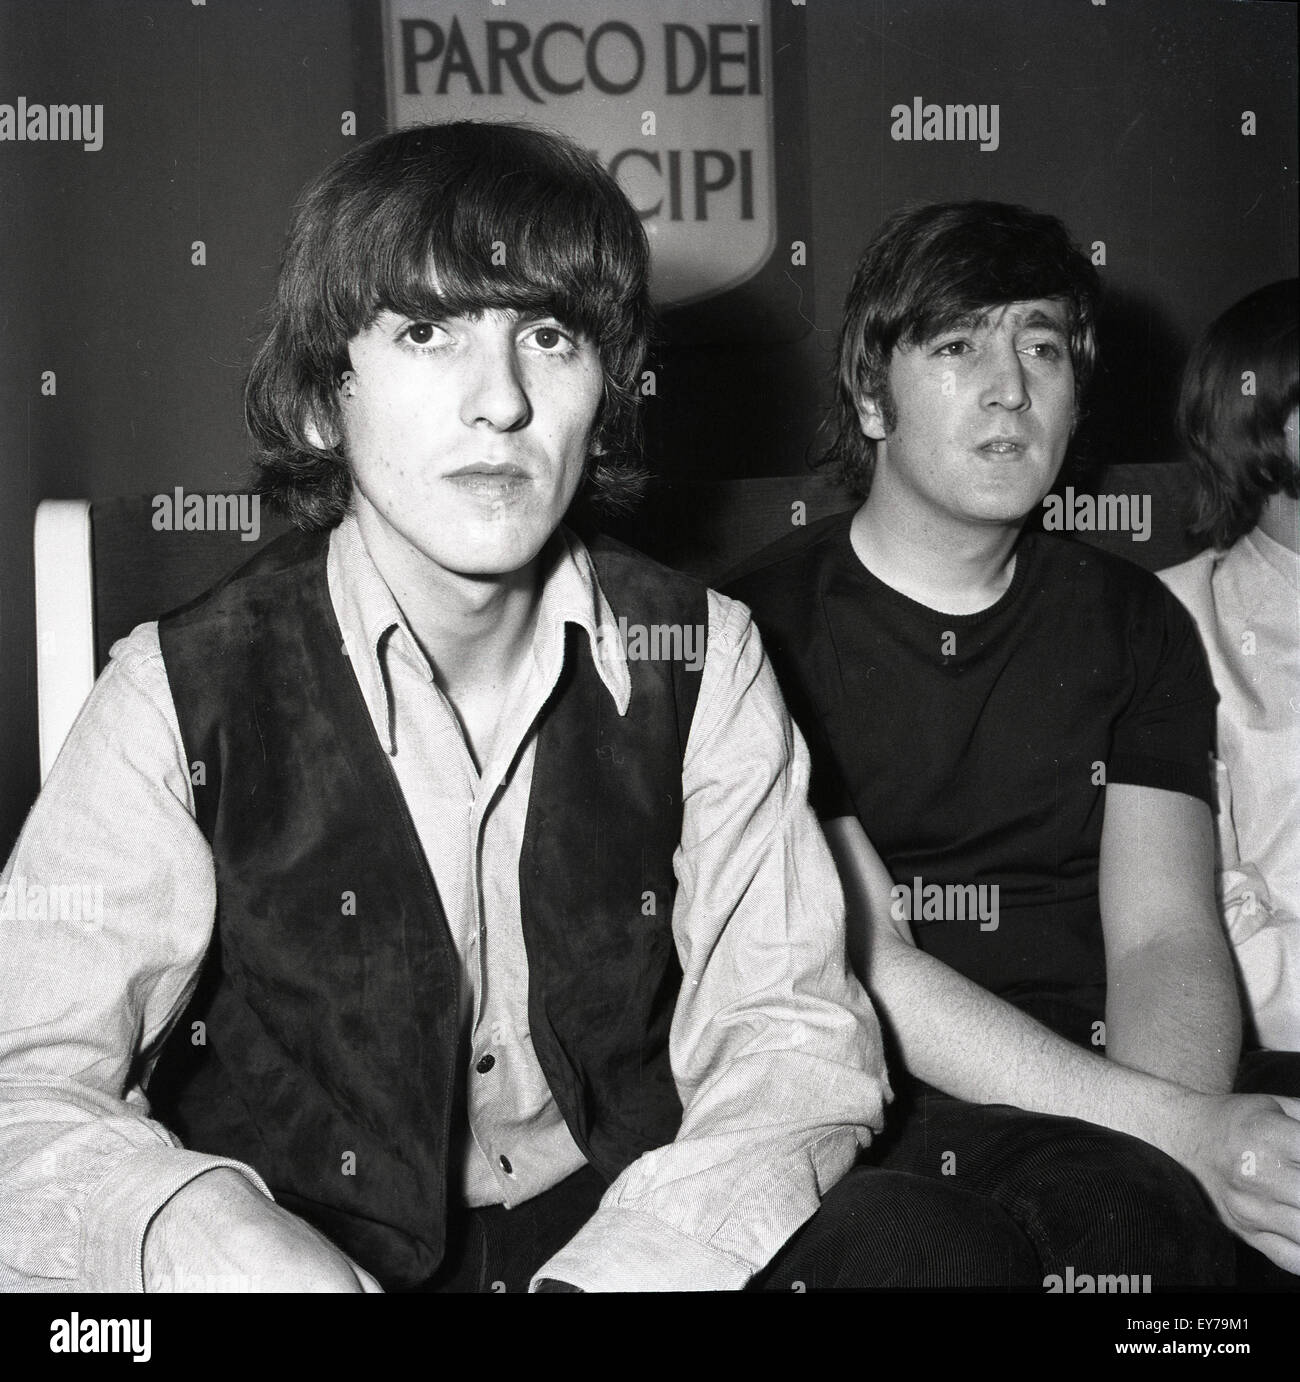 006188 - The Beatles at a Press Conference in Rome, Italy 27th June 1965 - Stock Image